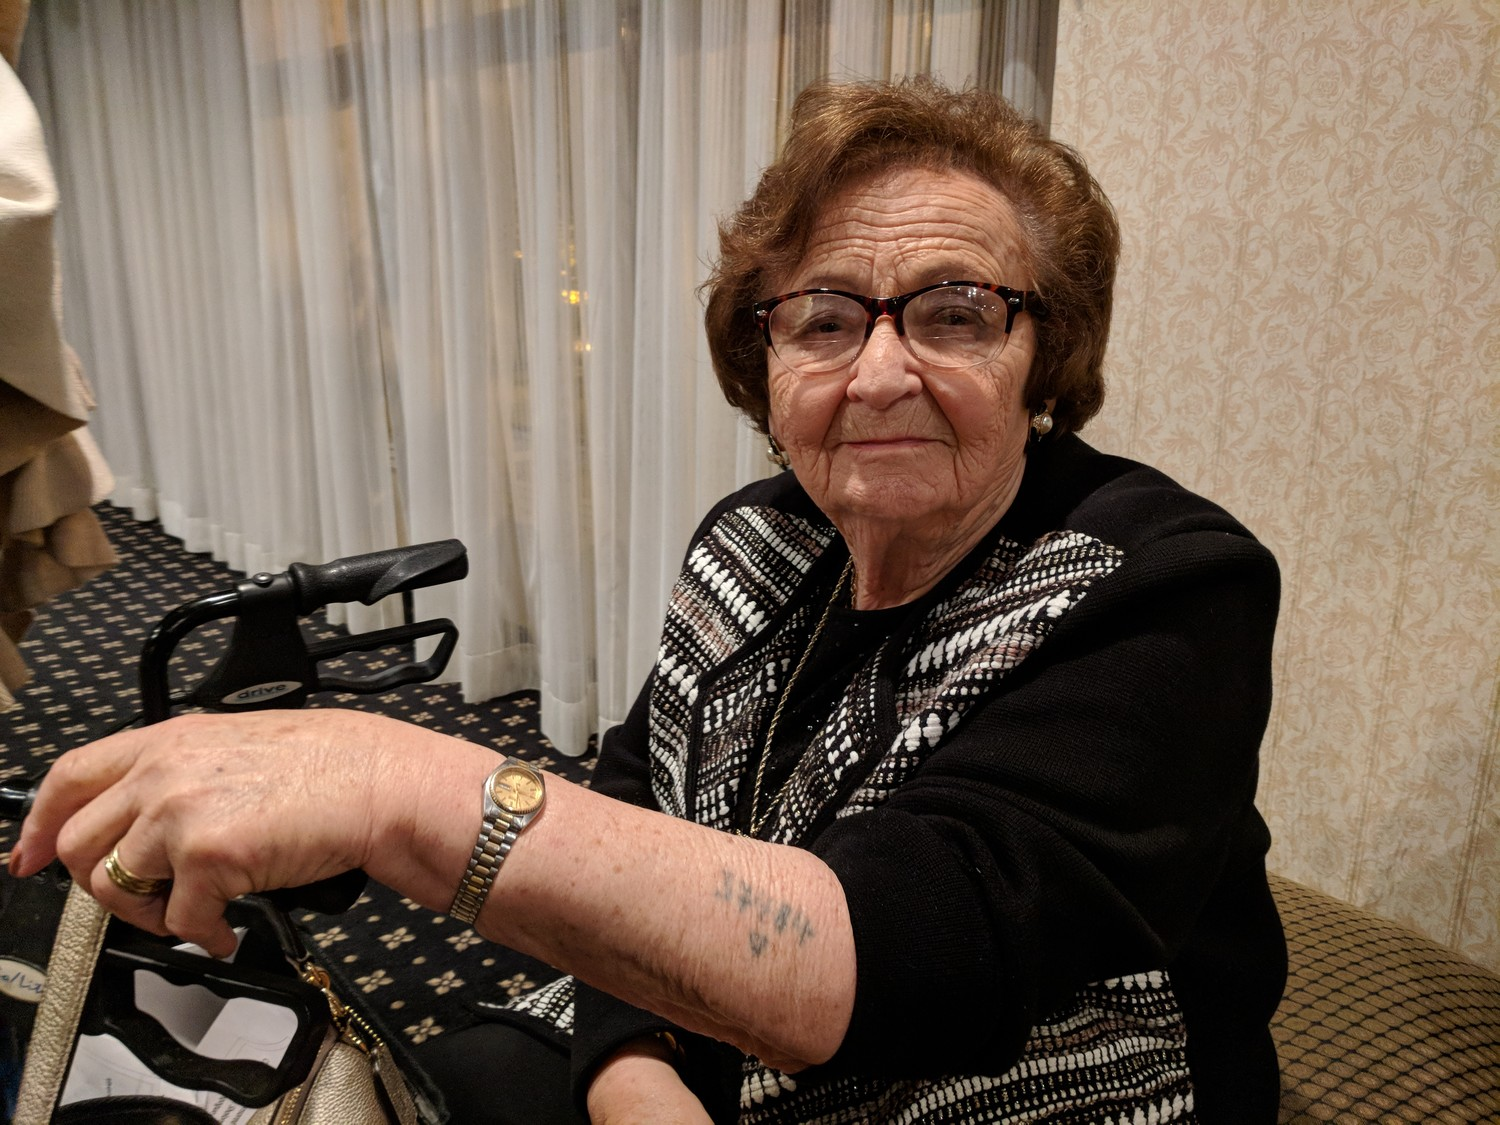 holocaust survivor shares her story | herald community newspapers